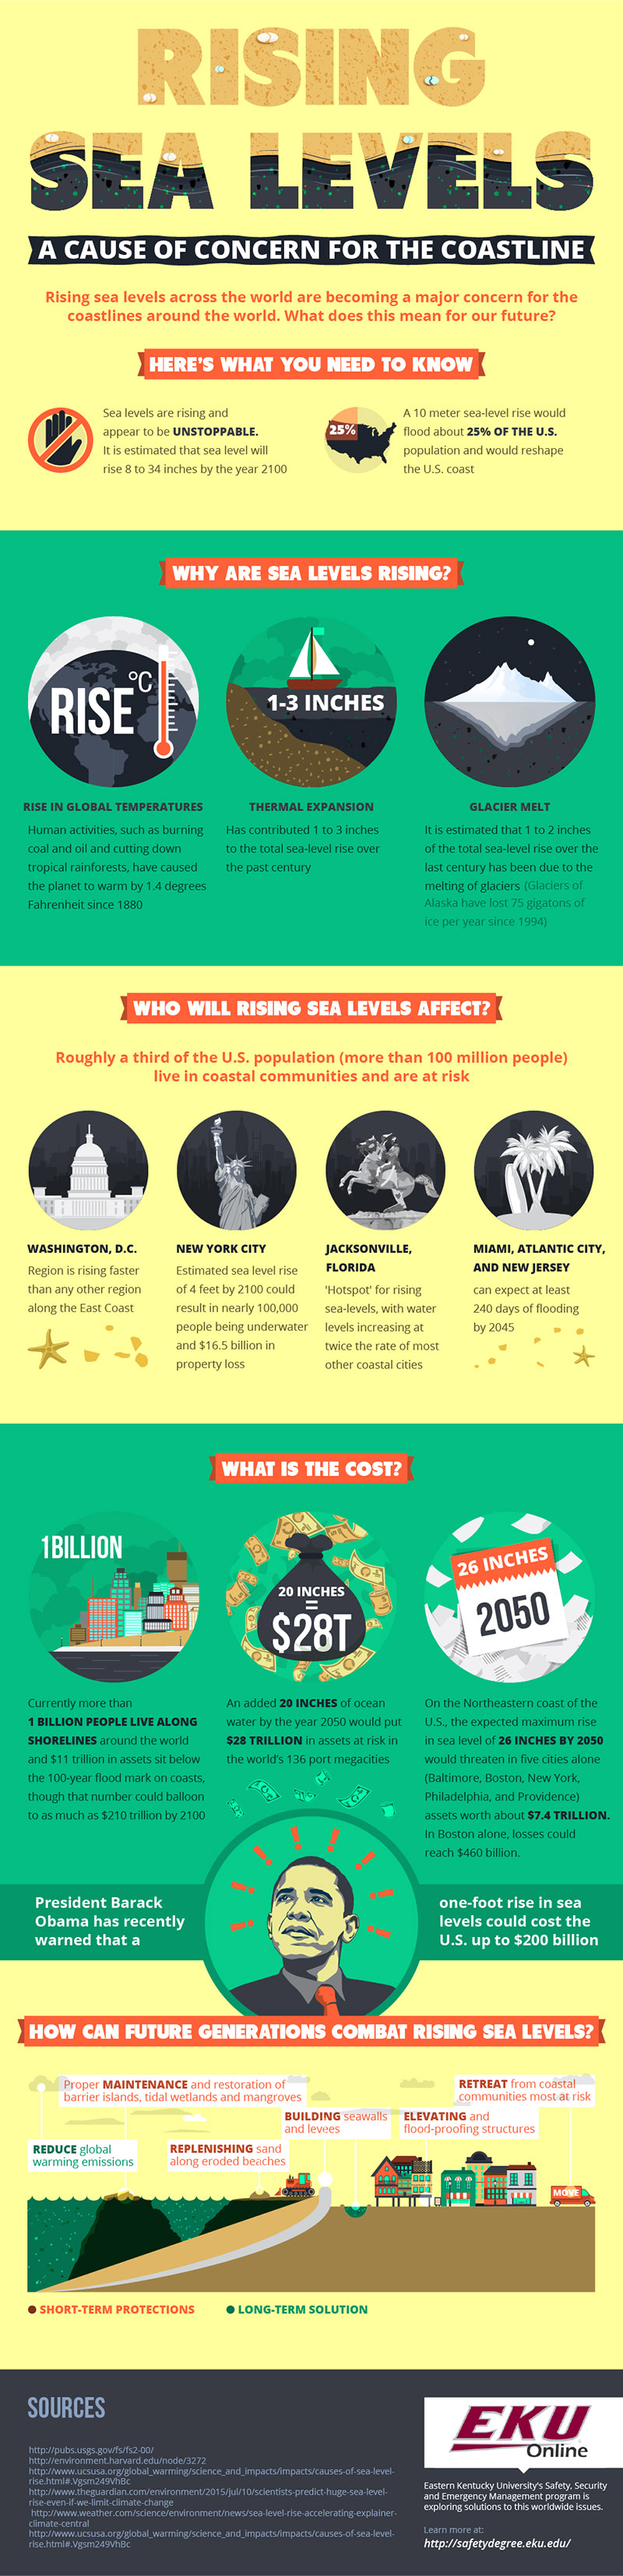 infographic, sea level rise, sea levels, ocean levels, rising ocean levels, cost of rising sea levels, coastal cities sea levels, global warming, climate change, melting glaciers